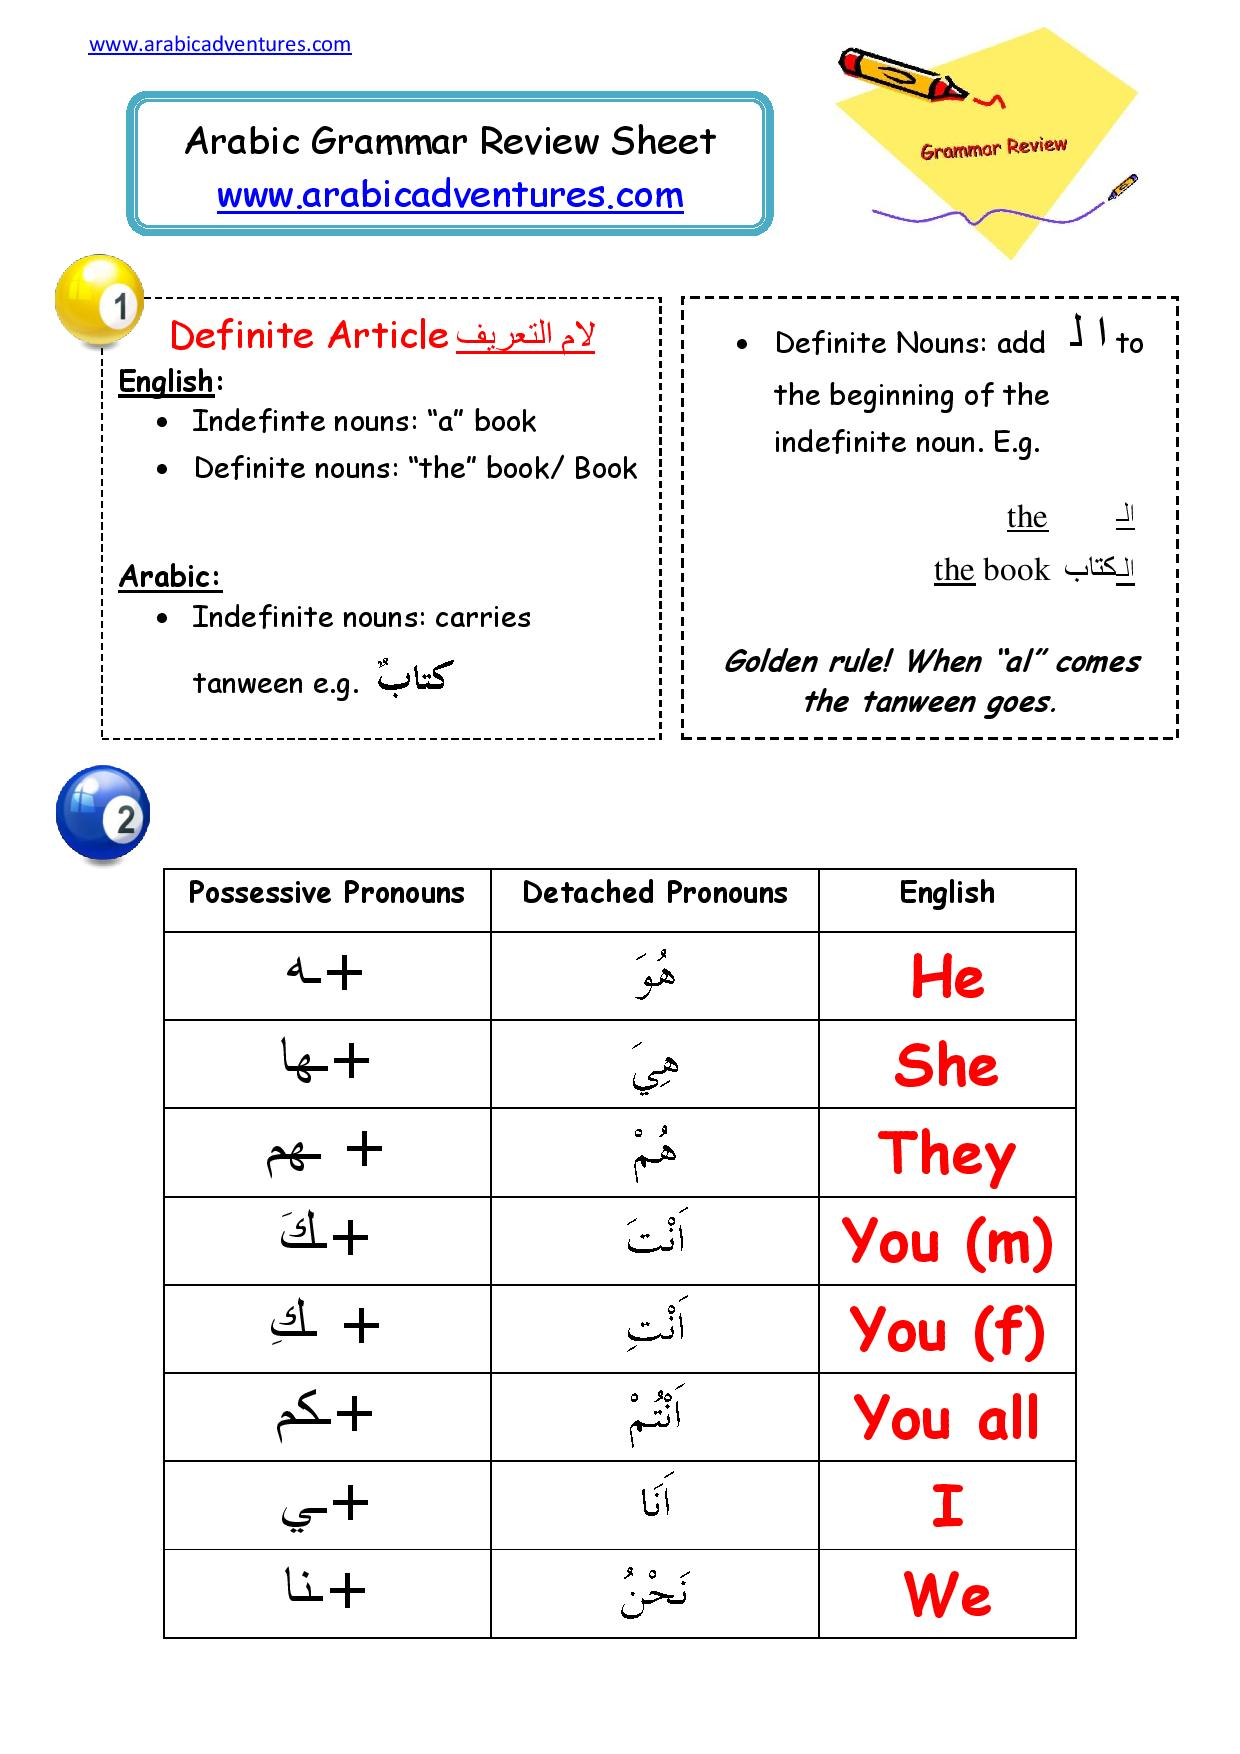 Arabic Grammar Review Sheet